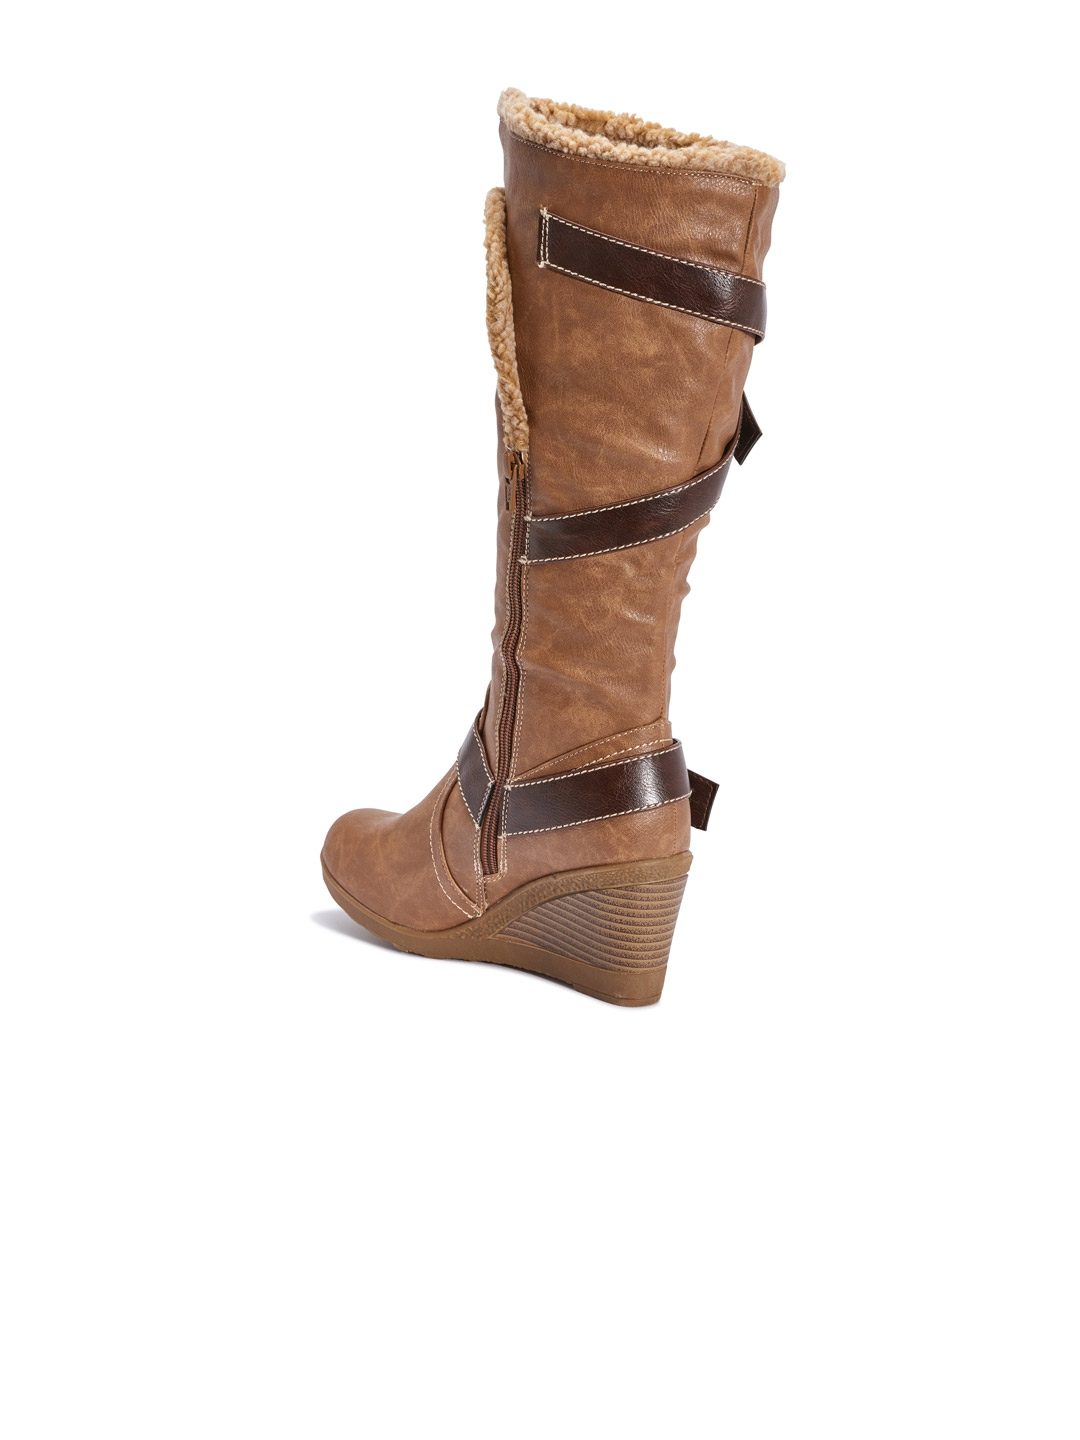 b7752793df132 Buy Truffle Collection Women Tan Brown Solid High Top Flat Boots ...